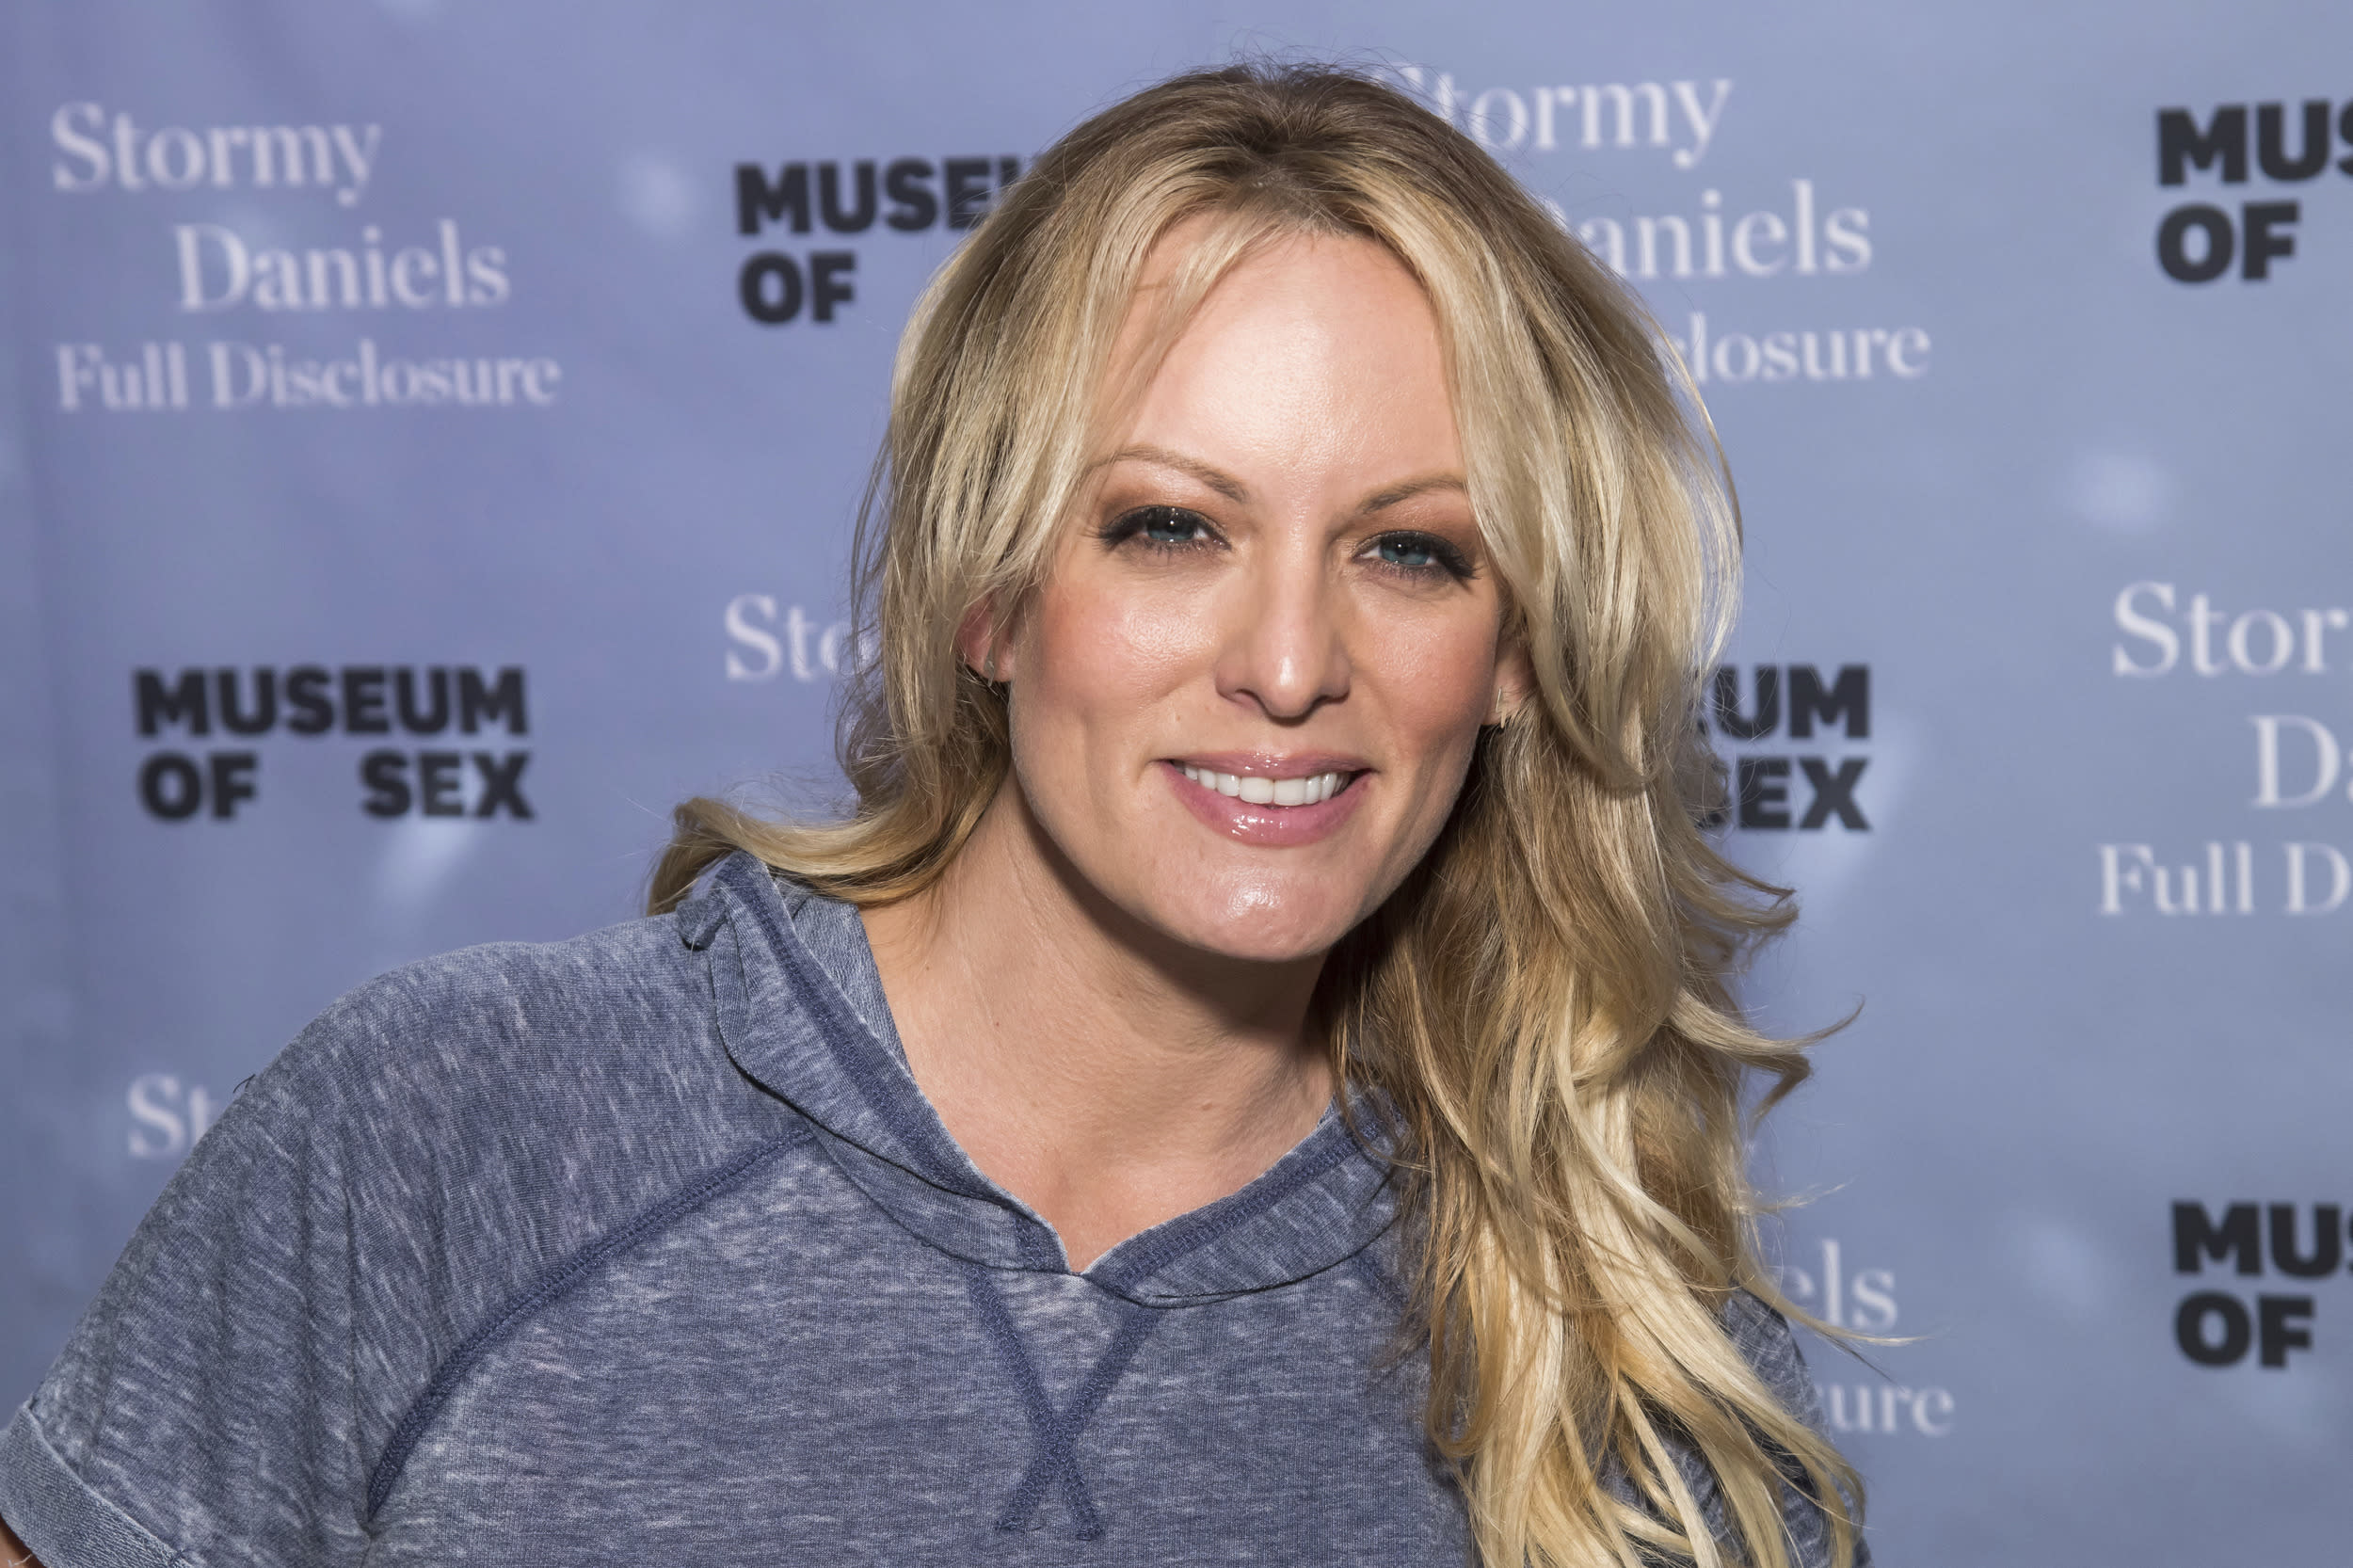 """Adult film actress Stormy Daniels attends a book signing for her memoir """"Full Disclosure"""" at the Museum of Sex on Monday, Oct. 8, 2018. (Photo by Charles Sykes/Invision/AP)"""